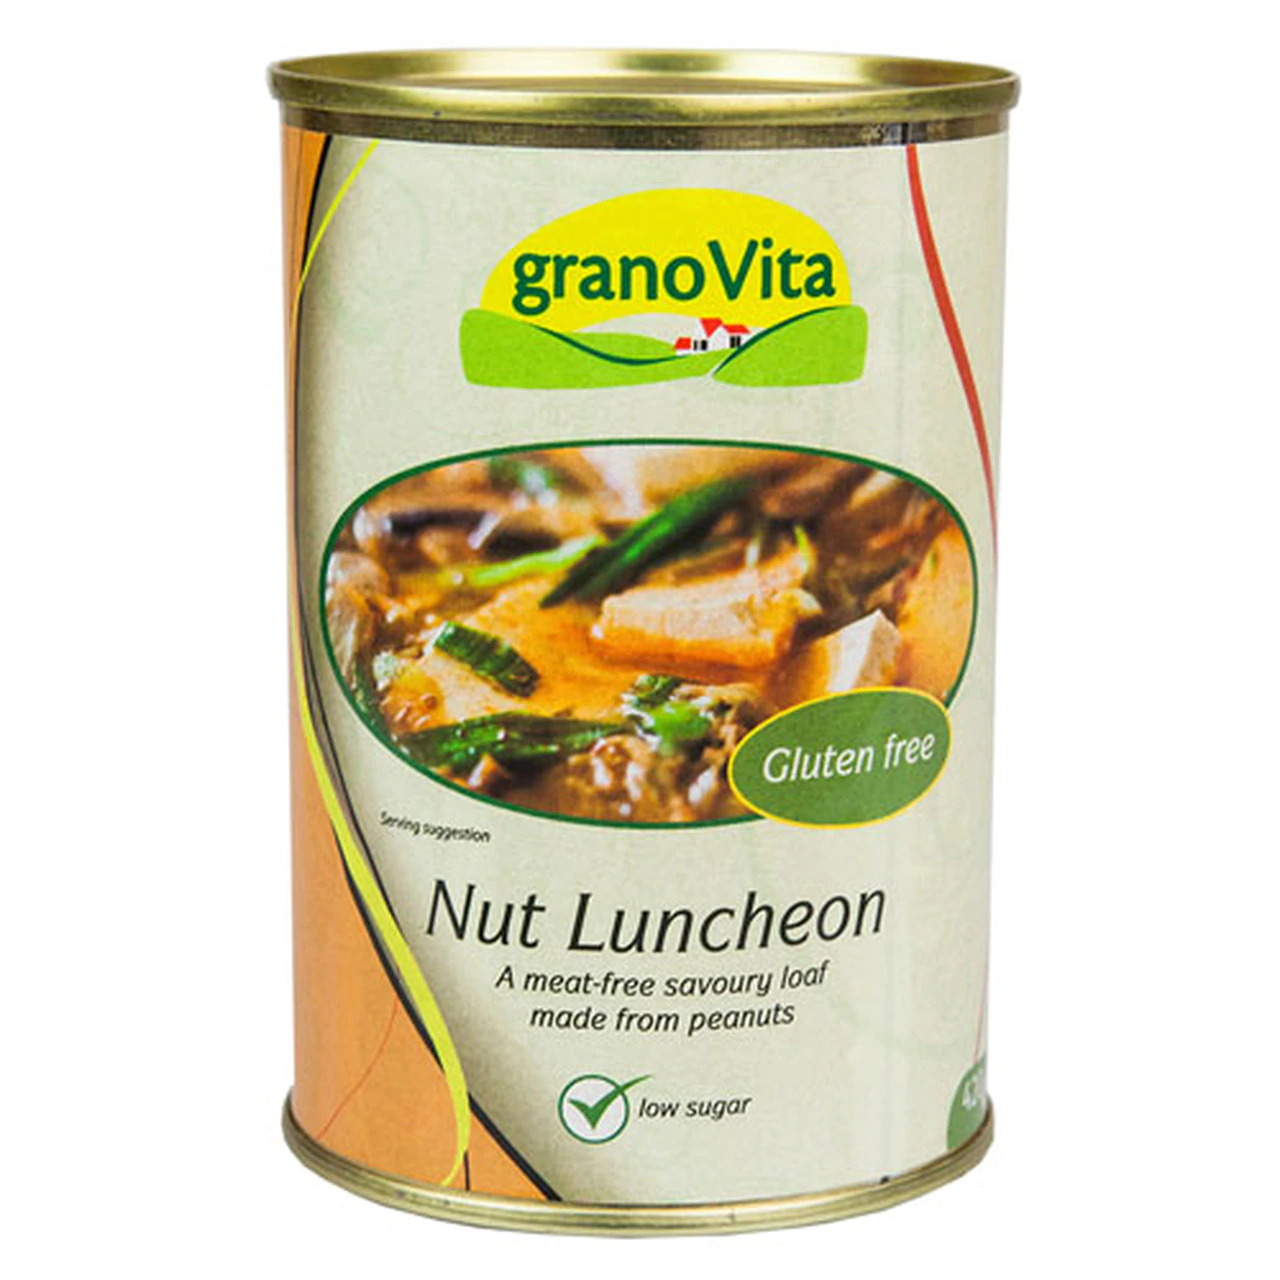 nut luncheon